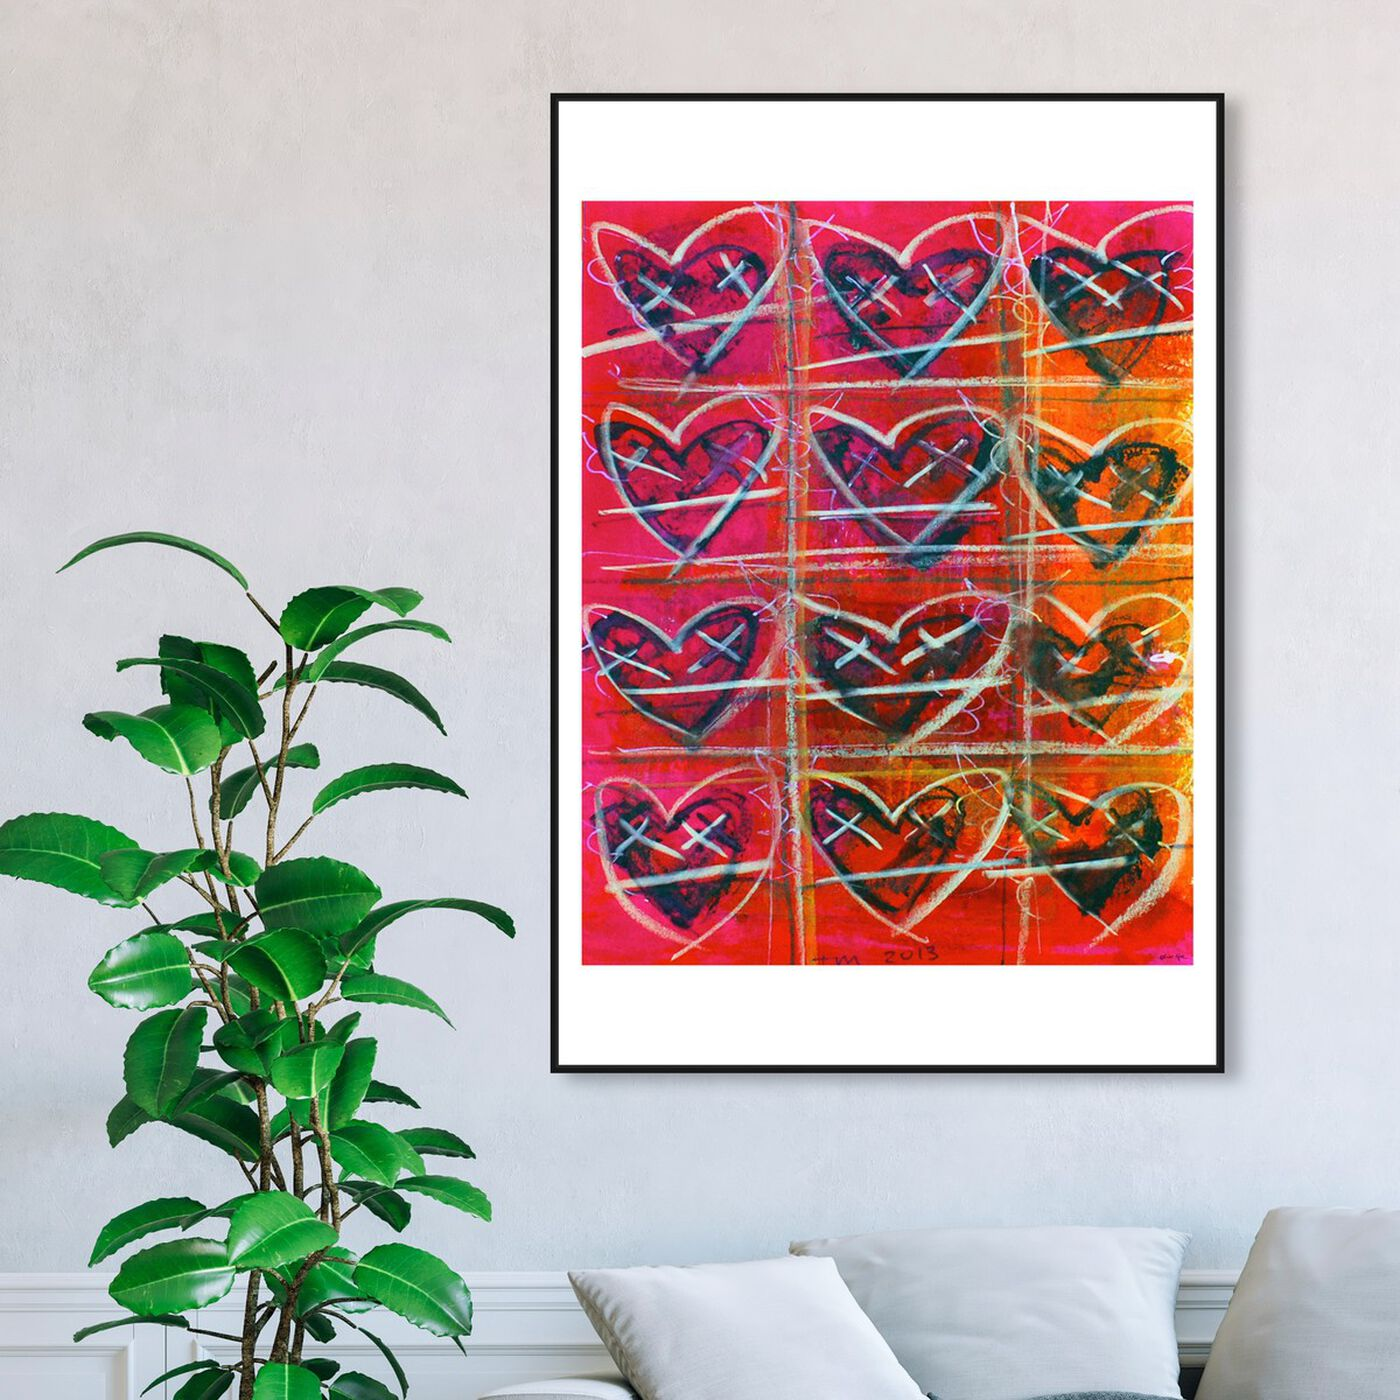 Hanging view of HeartFIRE by Tiago Magro featuring symbols and objects and shapes art.